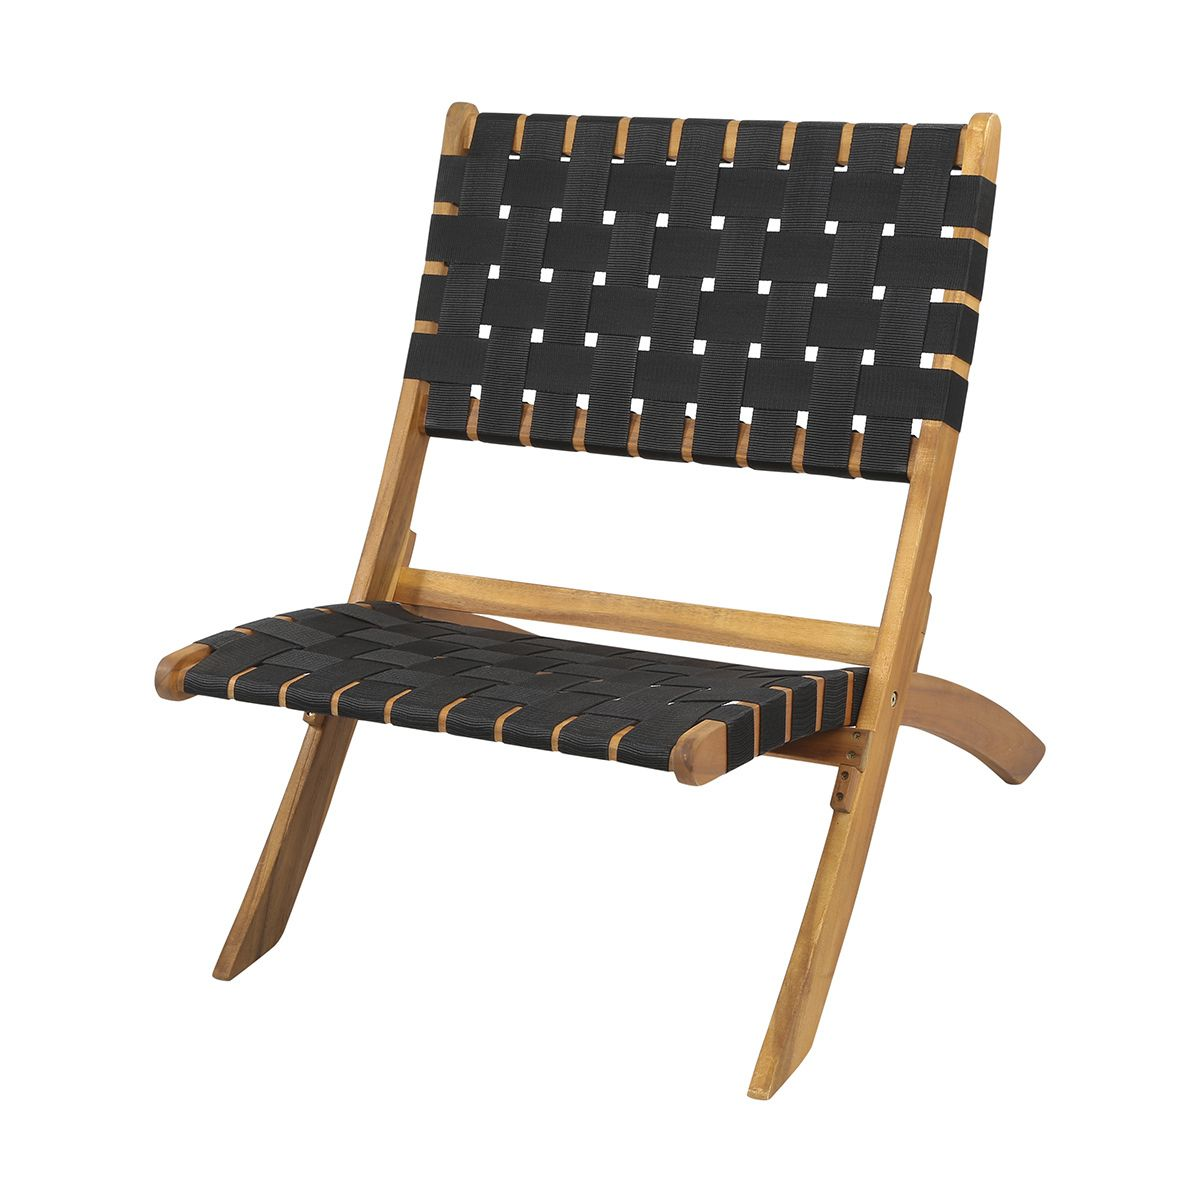 12 Kmart Outdoor Chairs - Lowes Paint Colors Interior Check more